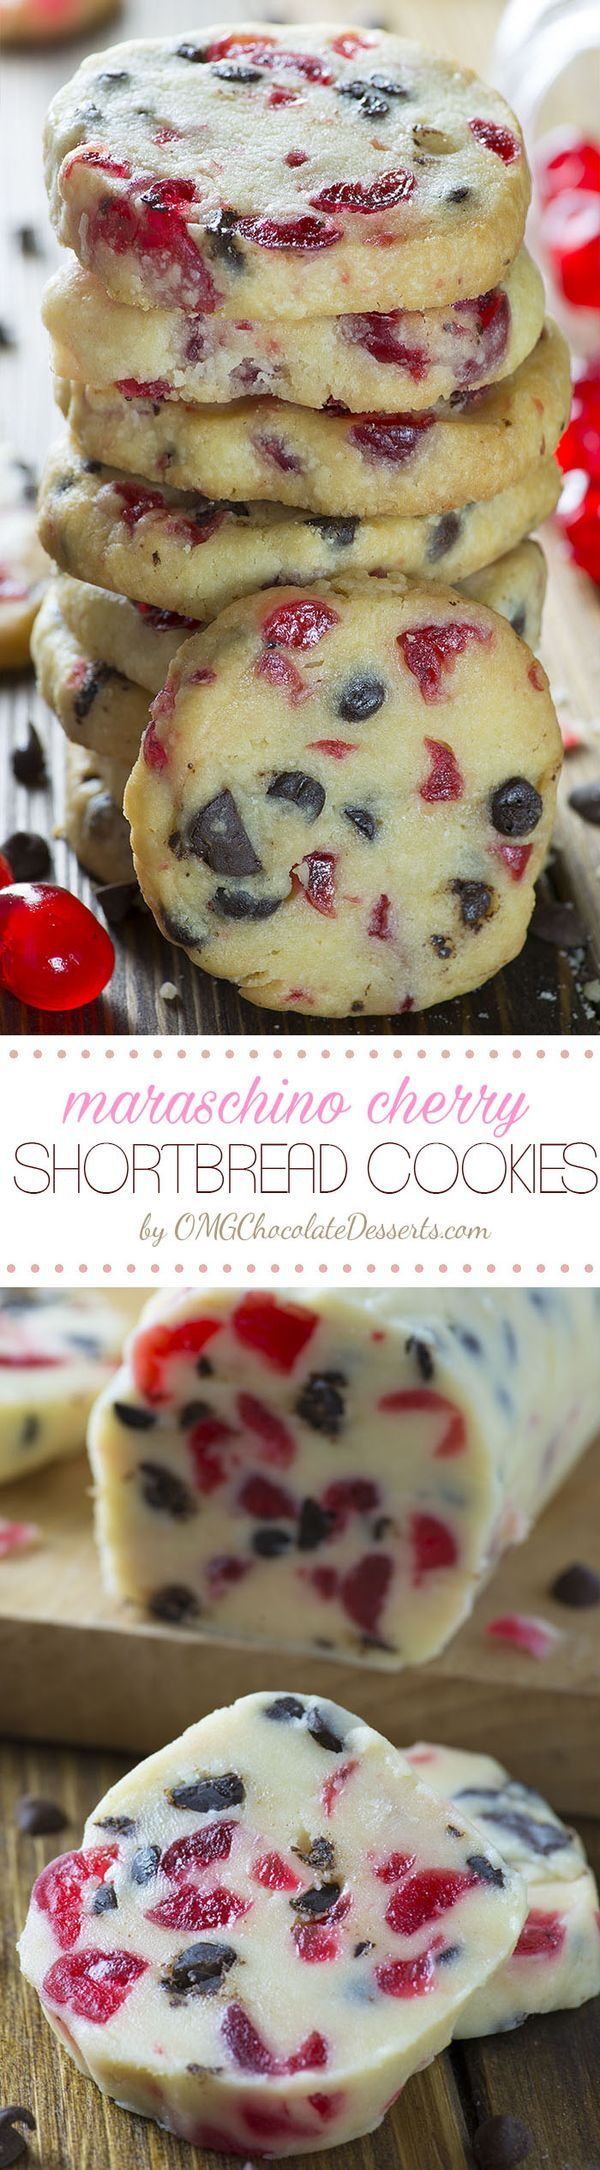 Christmas Maraschino Cherry Shortbread Cookies